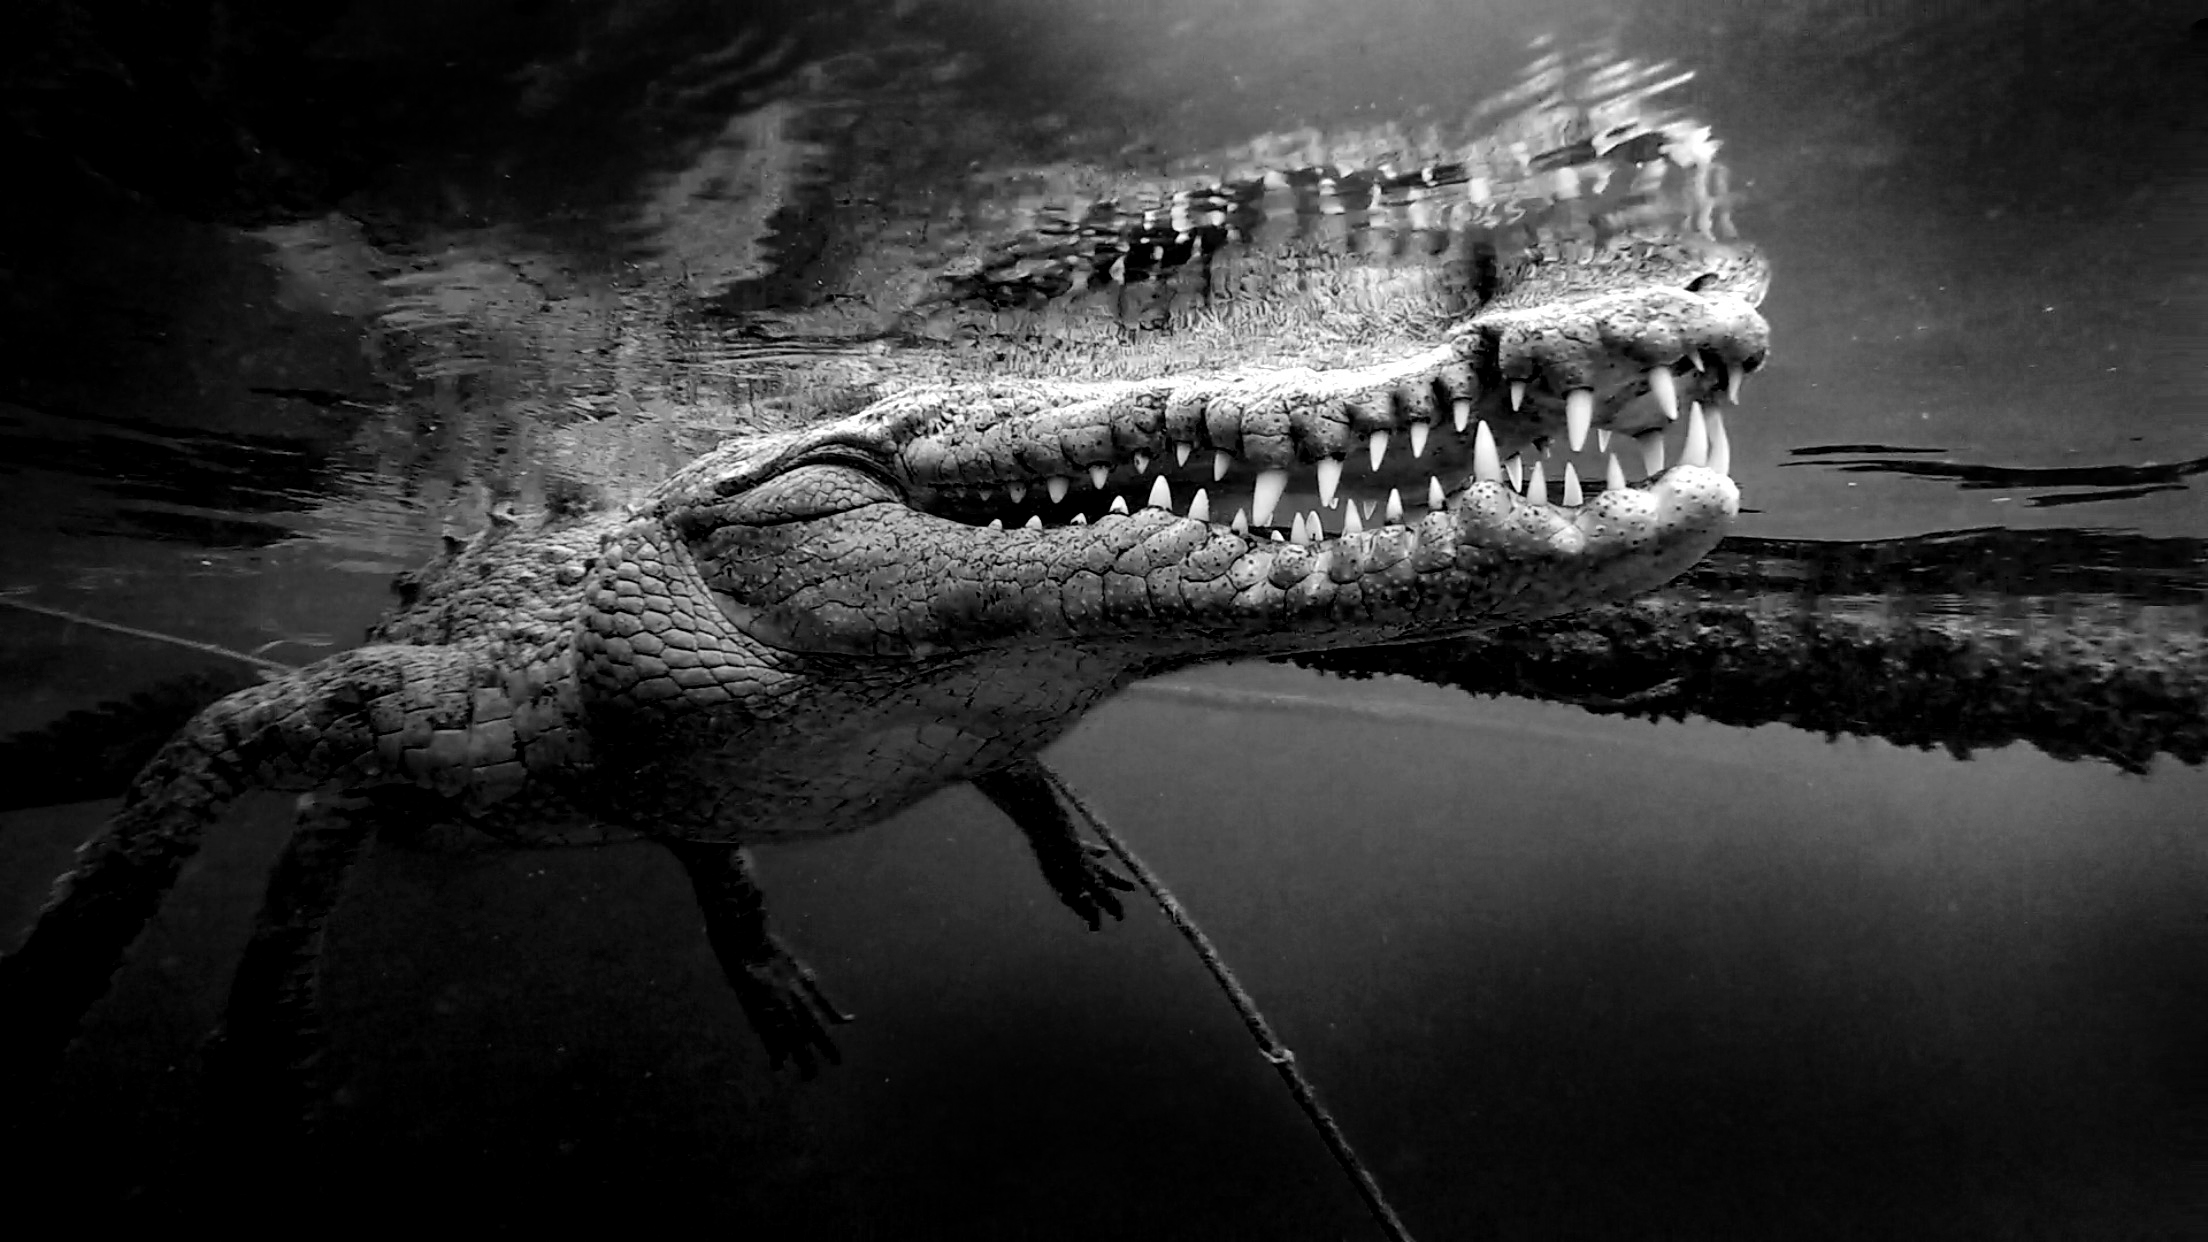 Crocodile up close